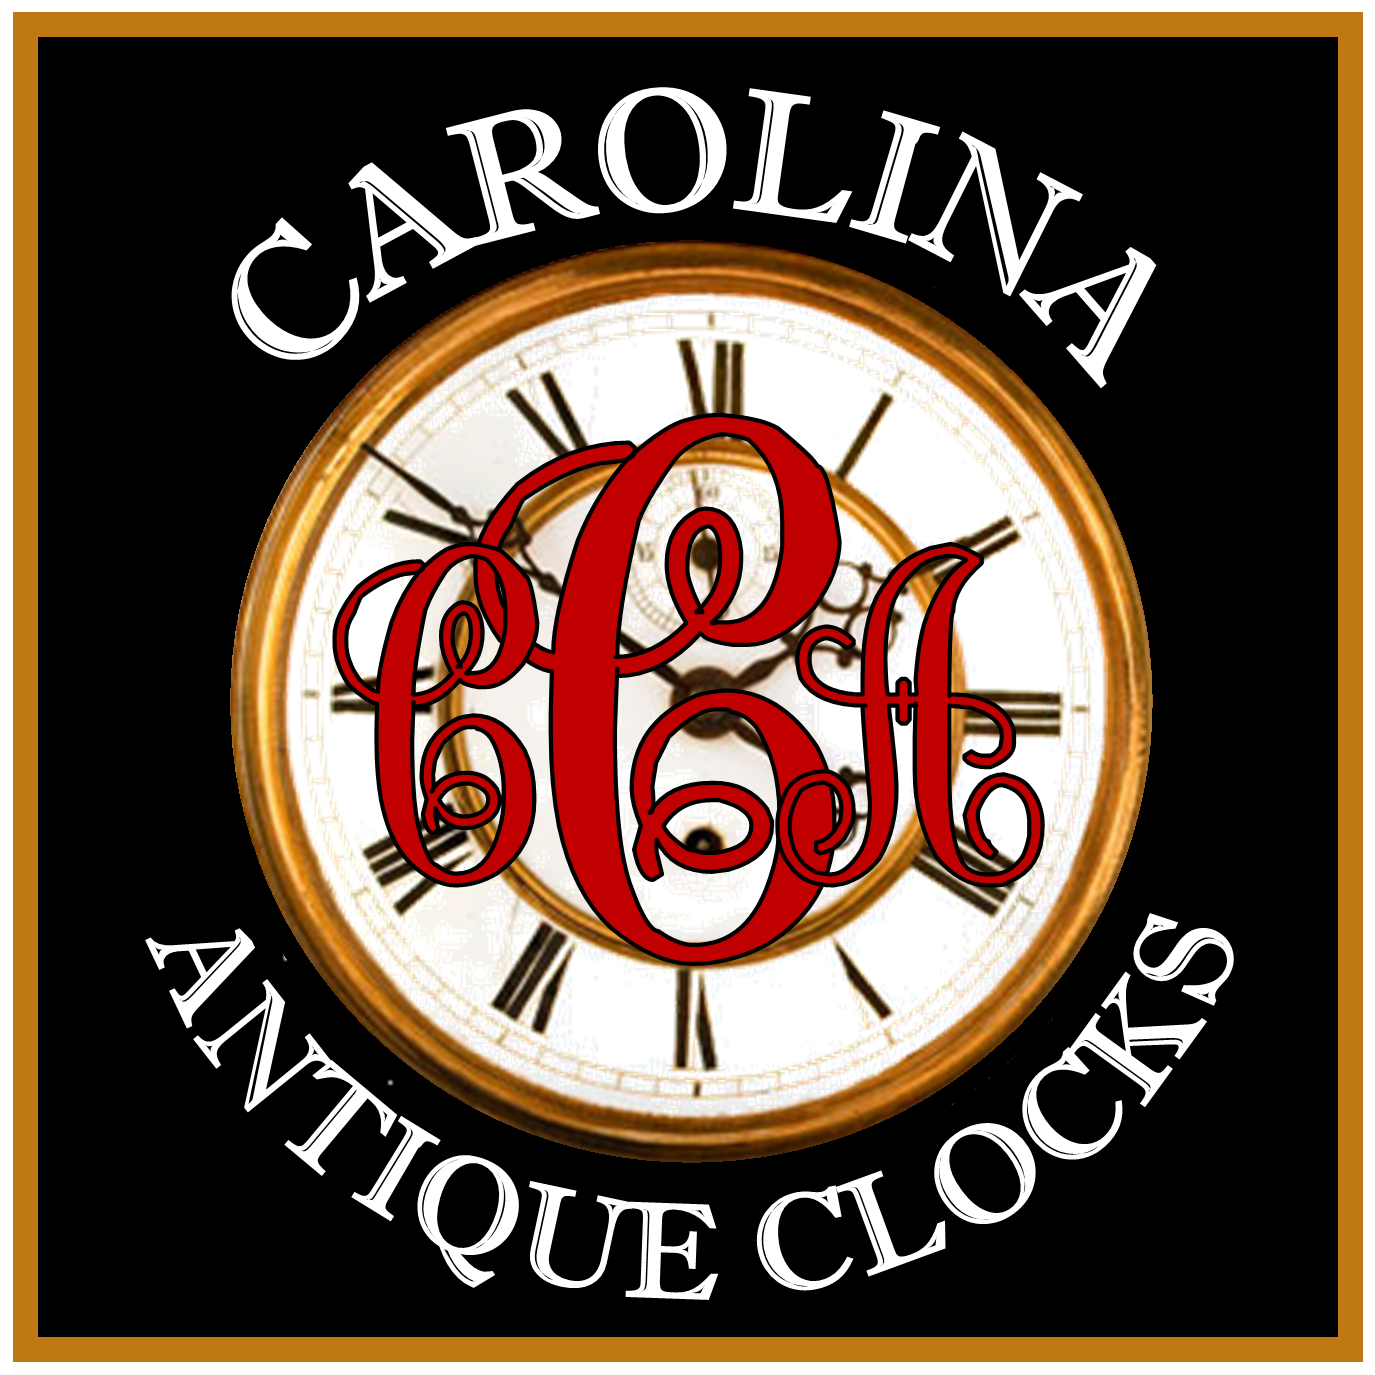 LOGO / Carolina Antique Clocks